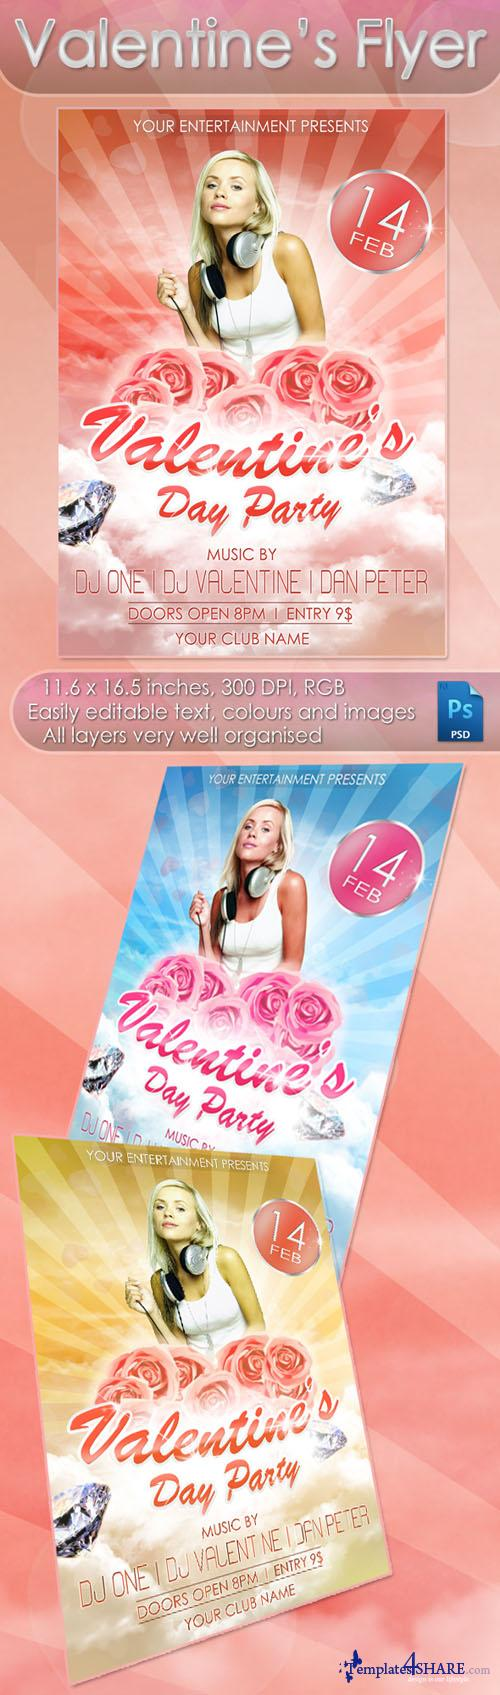 Valentines Flyer/Poster PSD Template 2